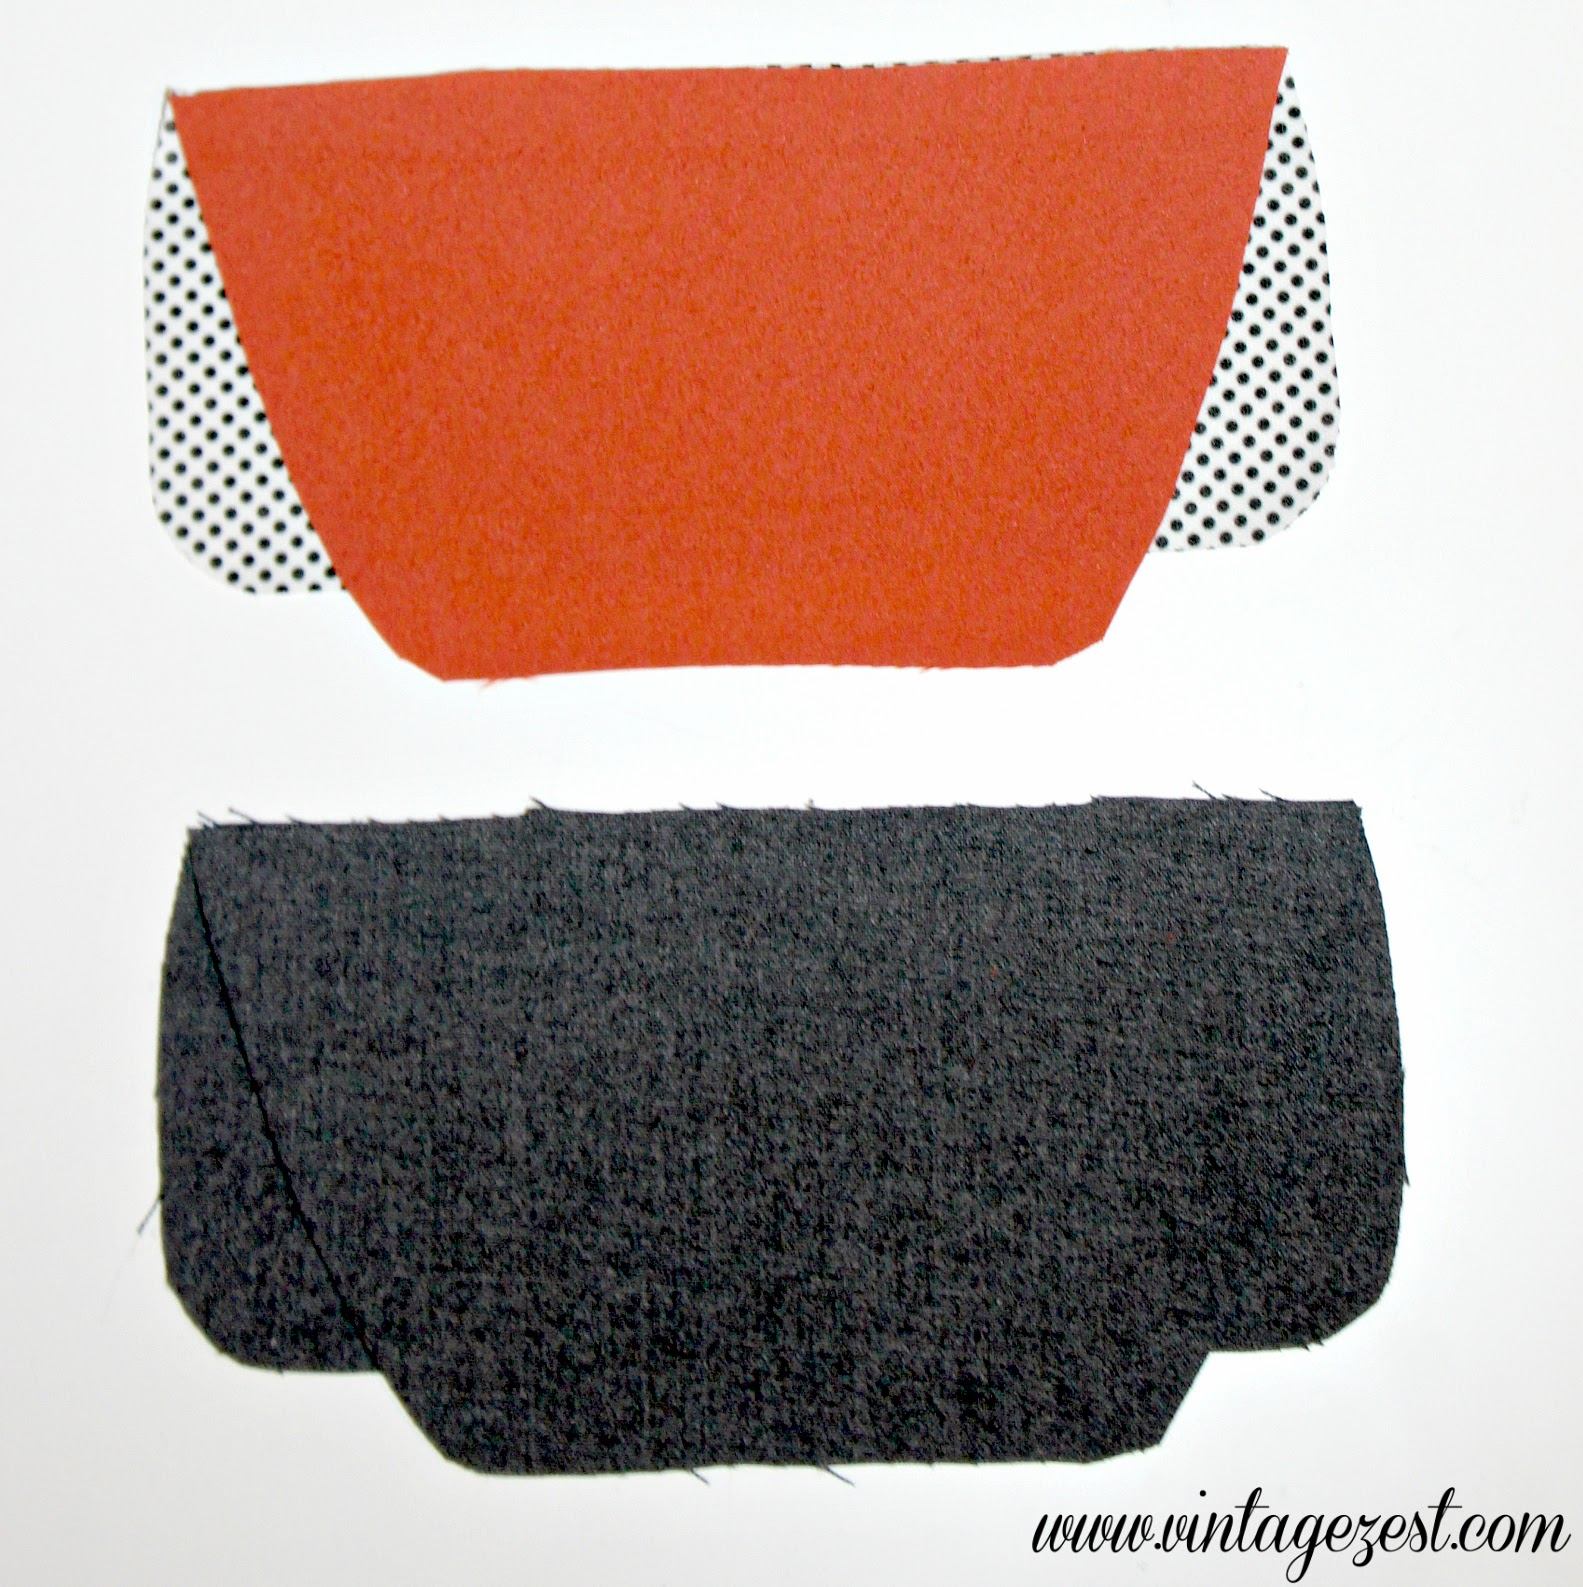 Sewing Tutorial + Pattern - Sunglasses Case on Diane's Vintage Zest!